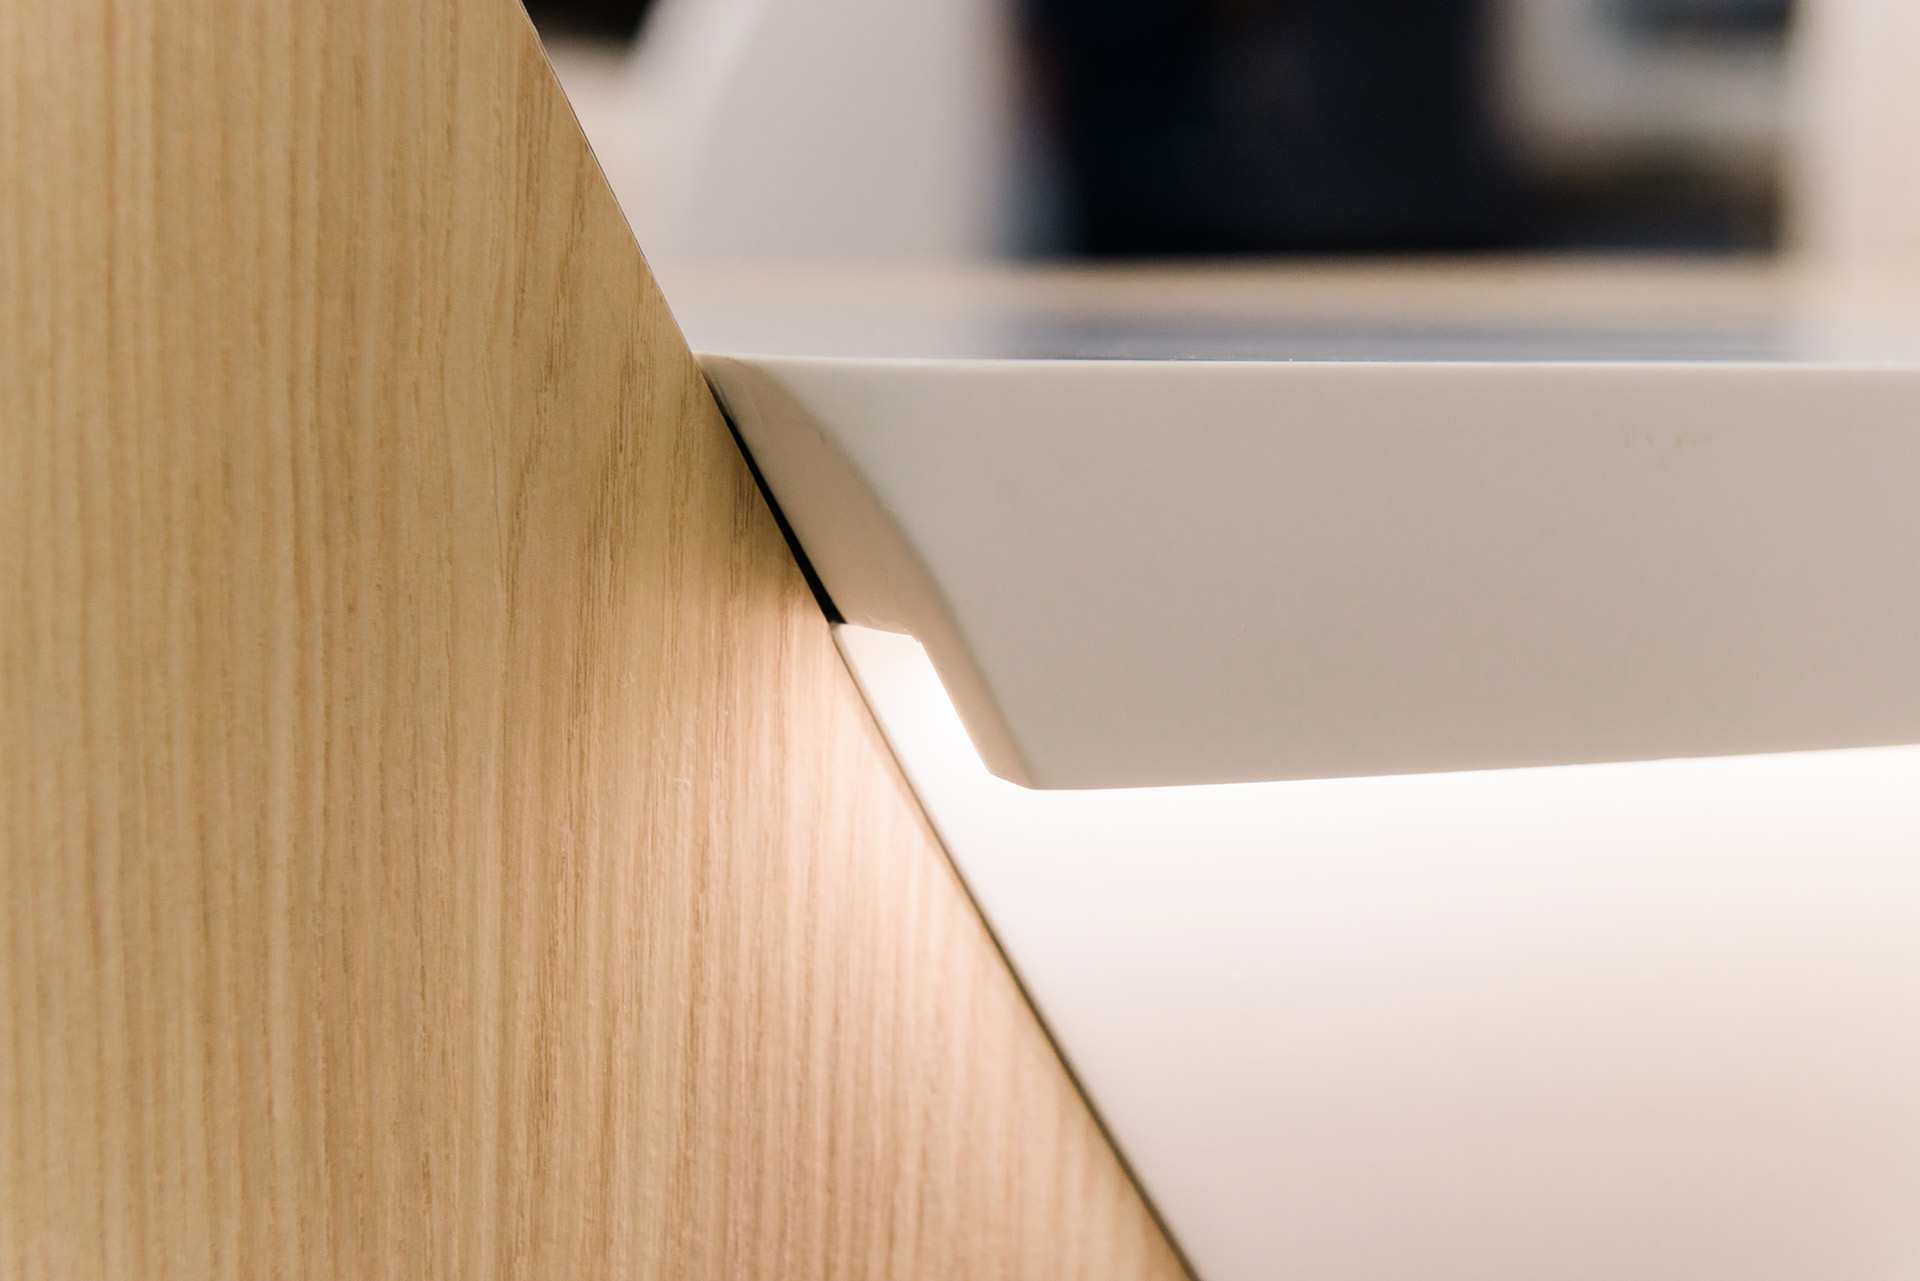 Recessed LED in reception desk as Royal Brompton Hospital